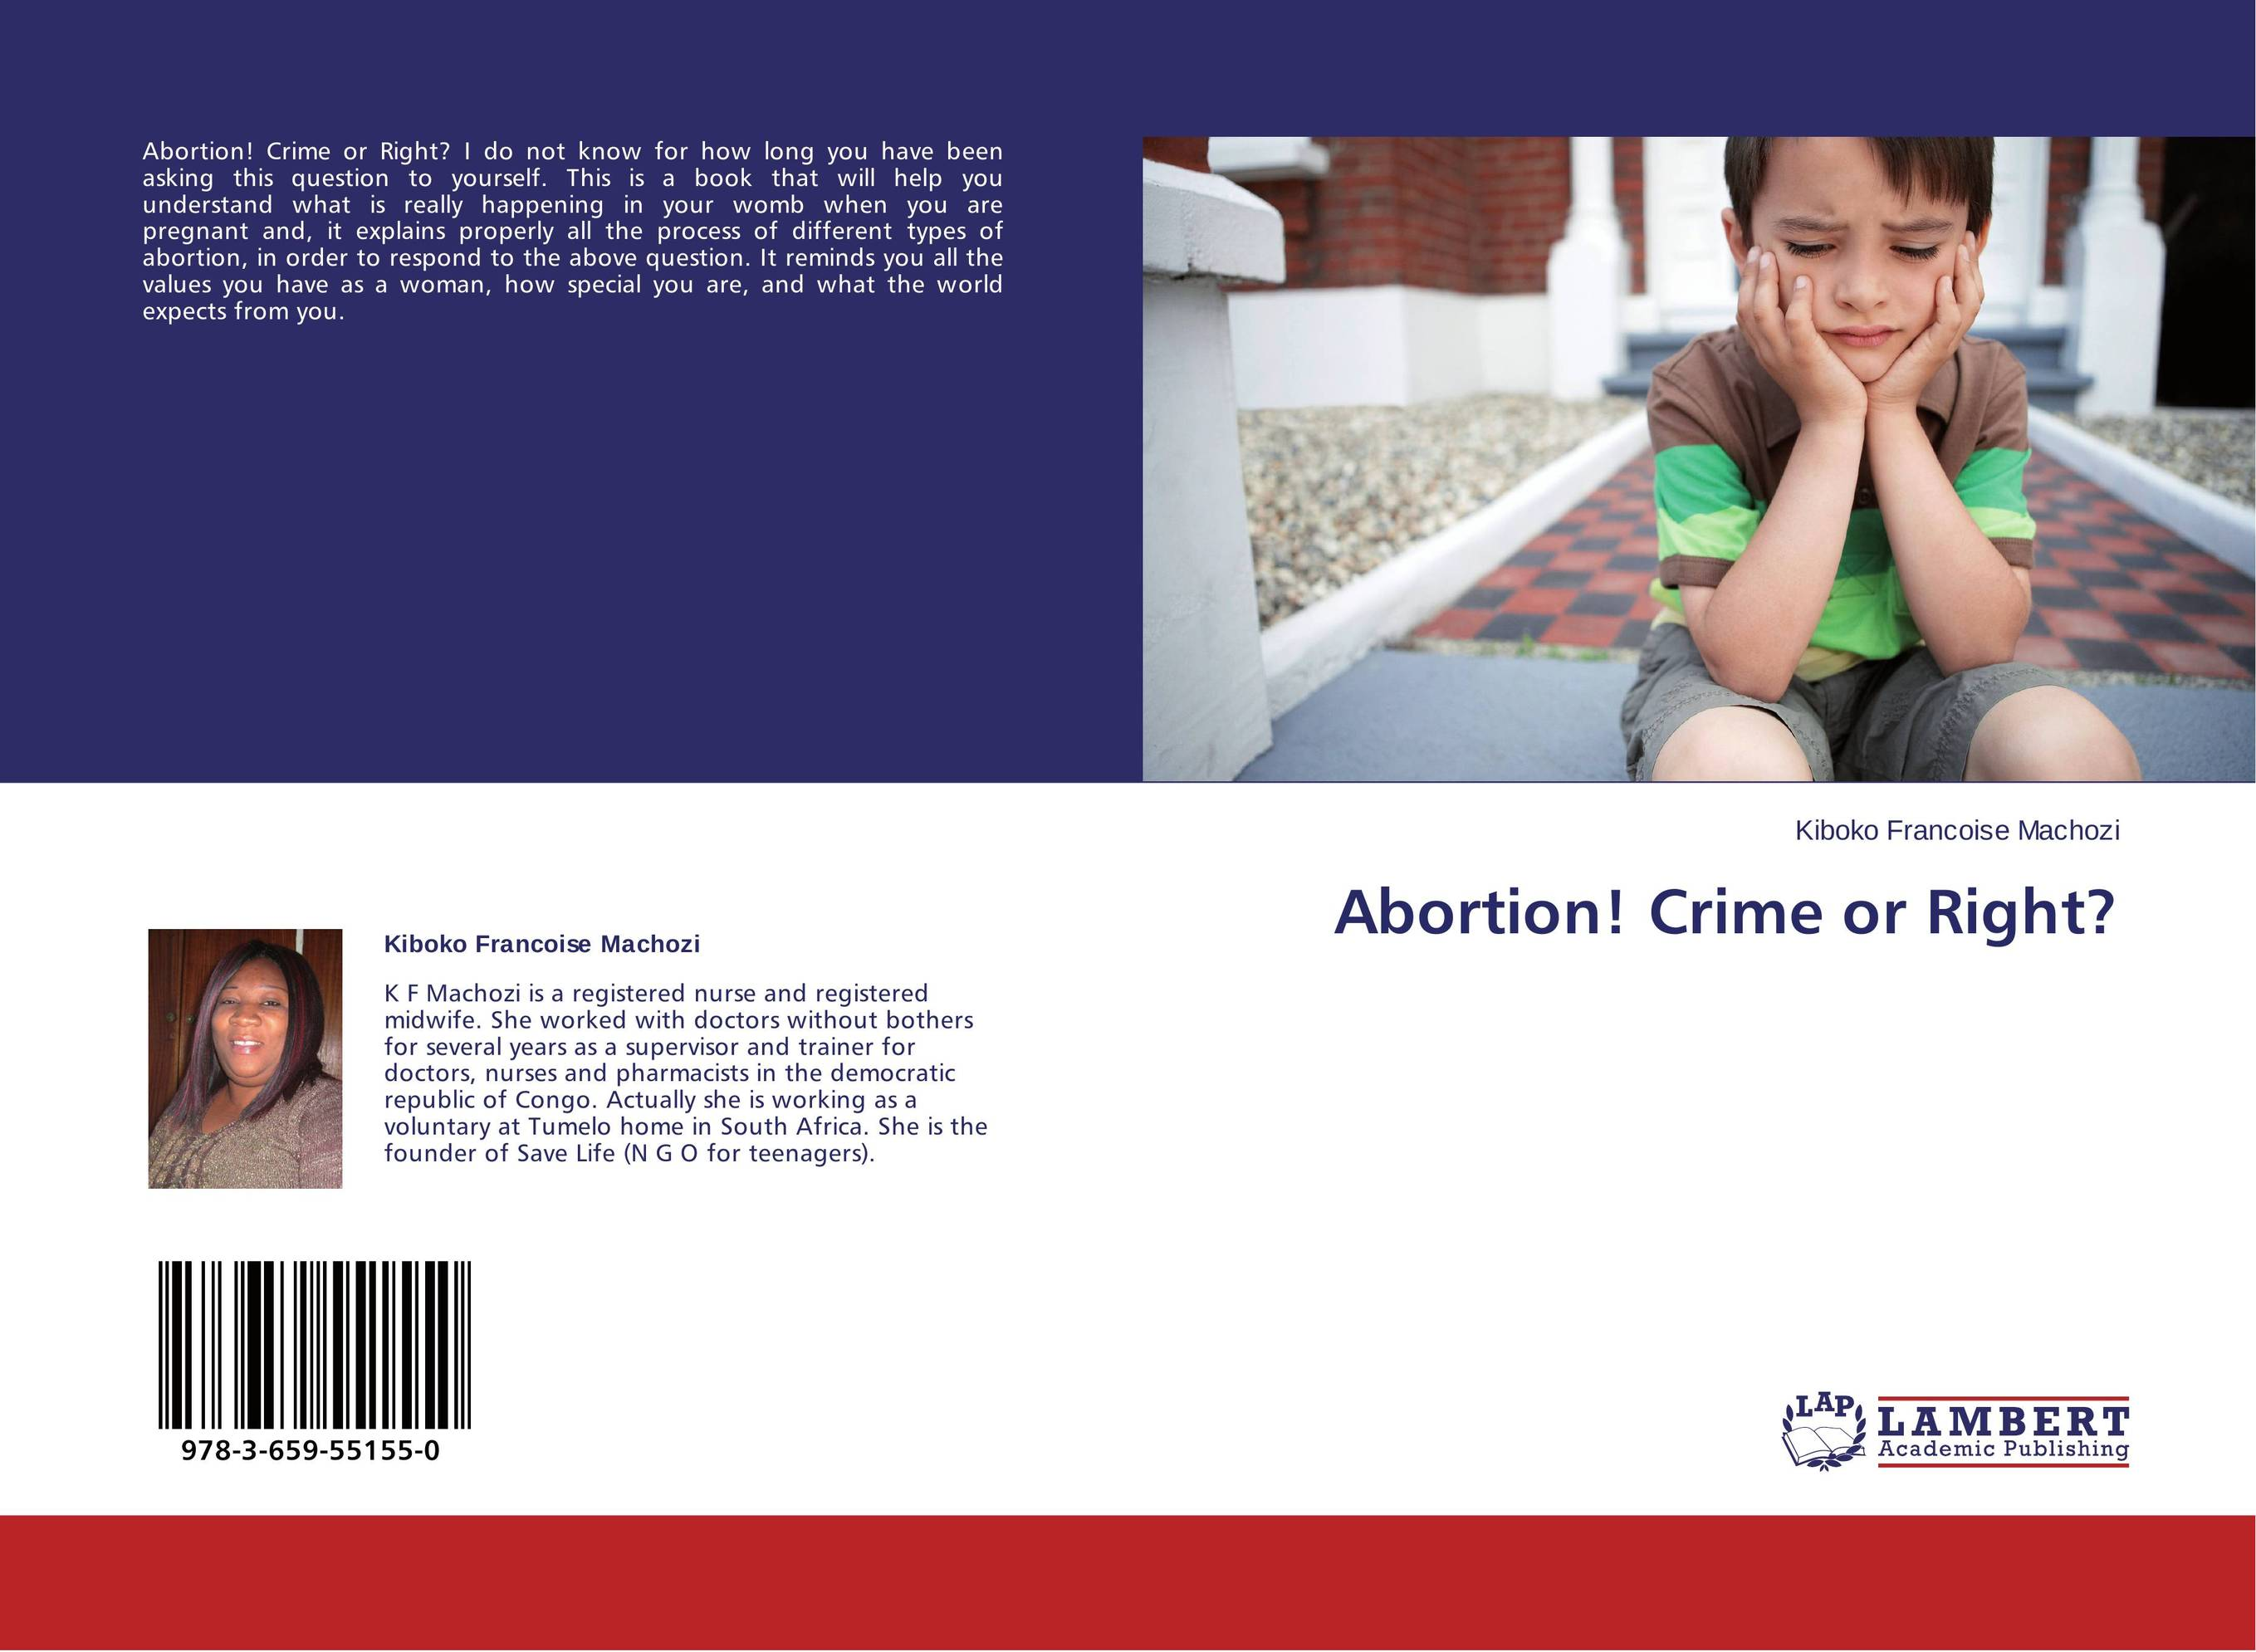 abortion as population control crime or Advocates of abortion and early activists seeking abortion law reform, used arguments designed to persuade people that abortion would be beneficial for women in particular, and society as a whole.